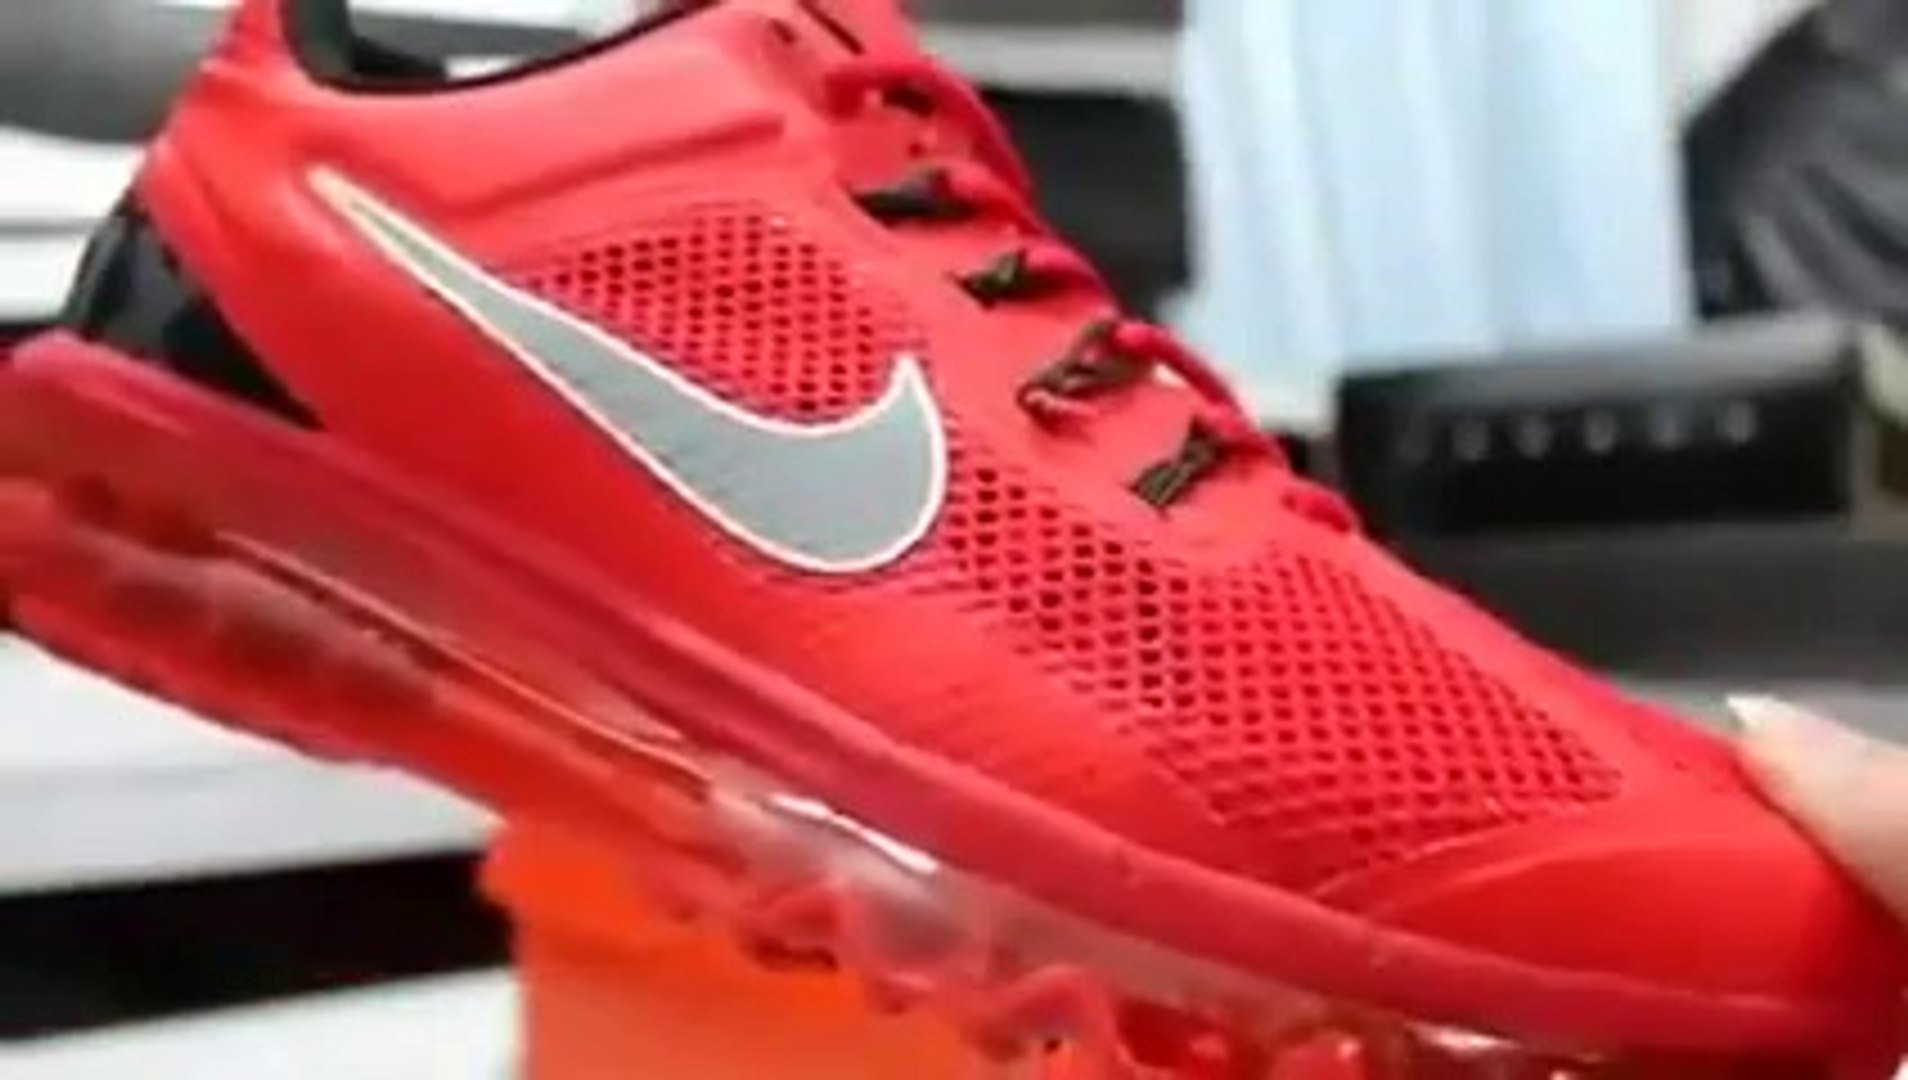 2014 cheap Fake vs real perfect Nike Air Max plus 2013 Red Shoes Cheap AAA Sneakers Reviews